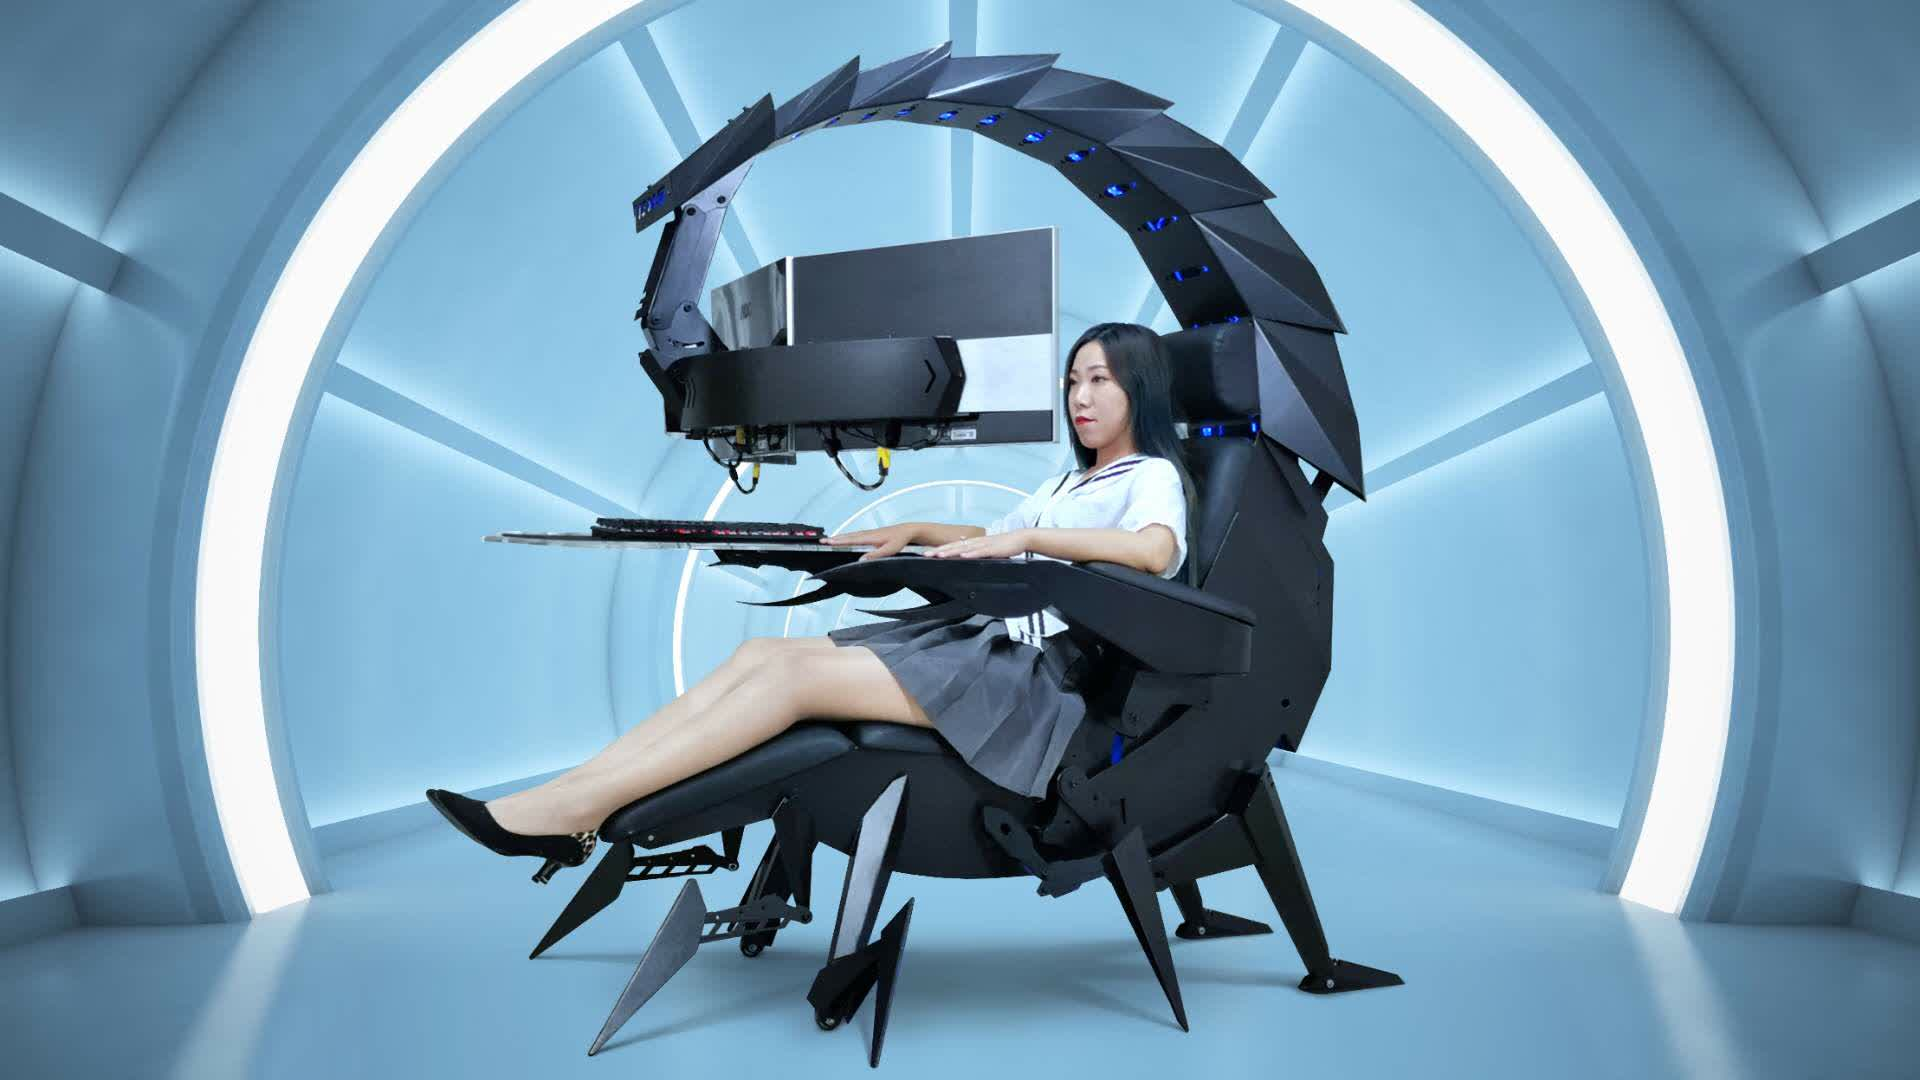 Sting your competition with this giant scorpion gaming cockpit from Cluvens